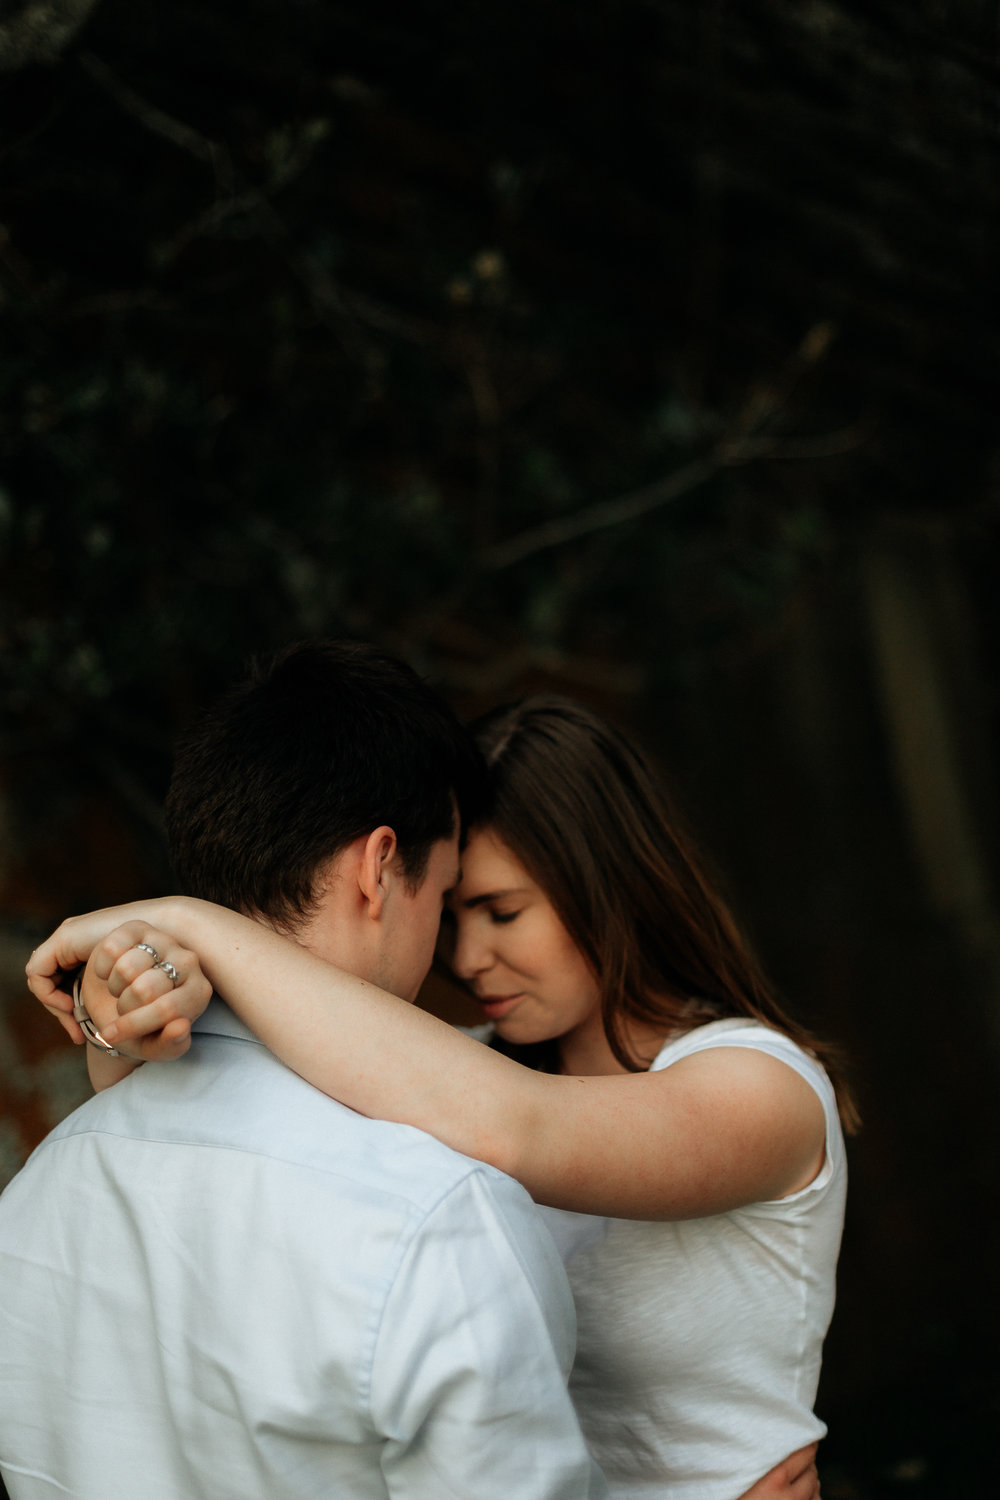 Amanzi and Steven_Engagement_Sydney_Holly Medway Photography-56.JPG